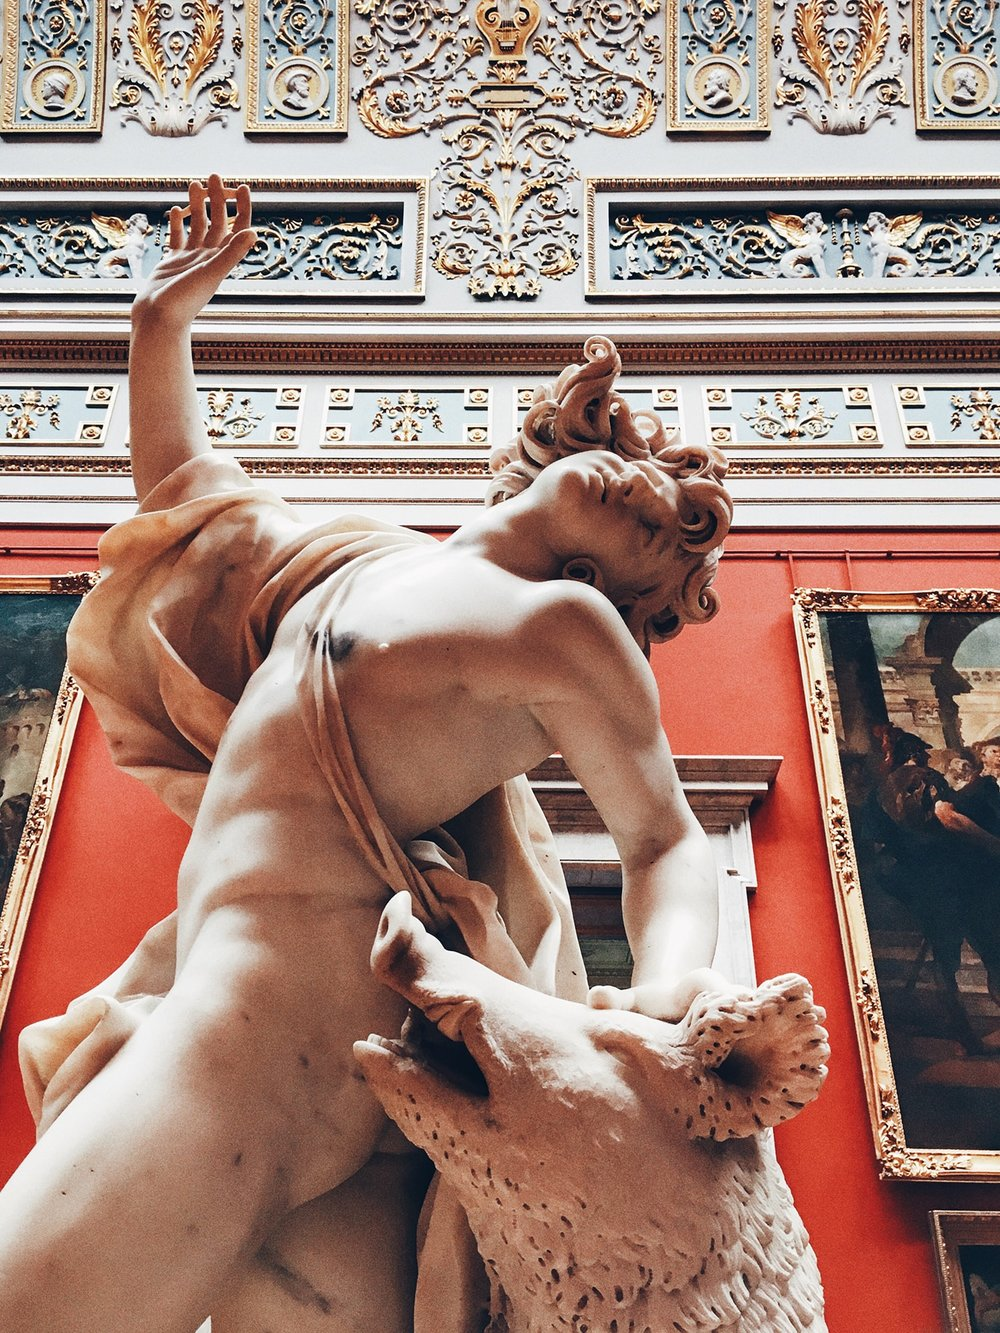 Death of Adonis sculpture by Giuseppe Mazzuola at the State Hermitage Museum (St. Petersburg, Russia)